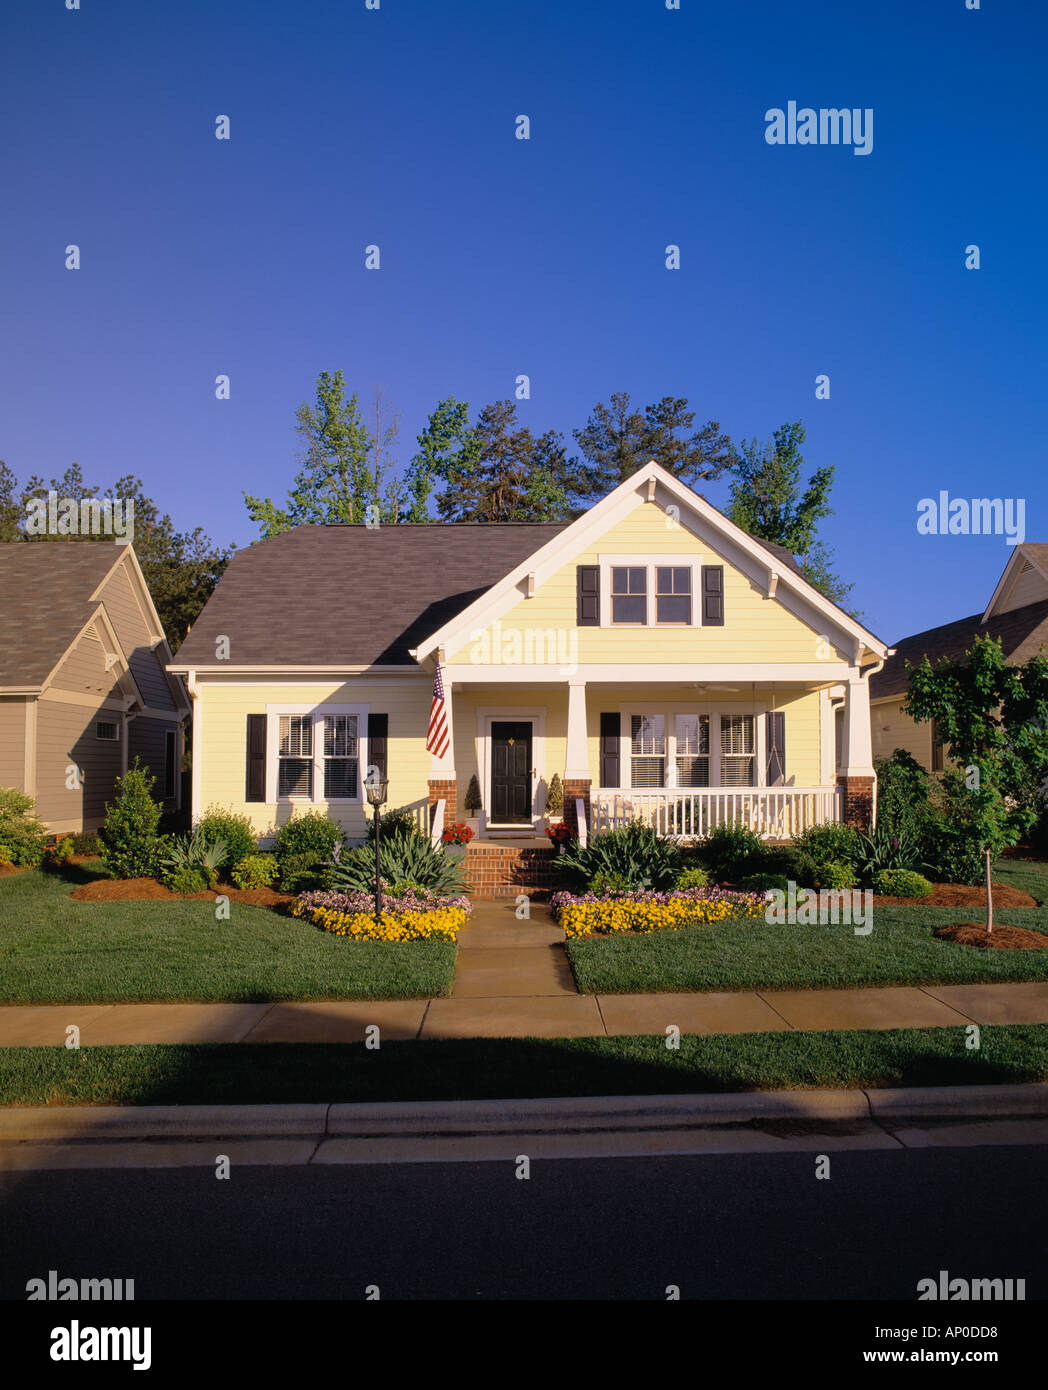 Small Two Story House Design: Small Two Story Yellow House With Black Shutters A Porch